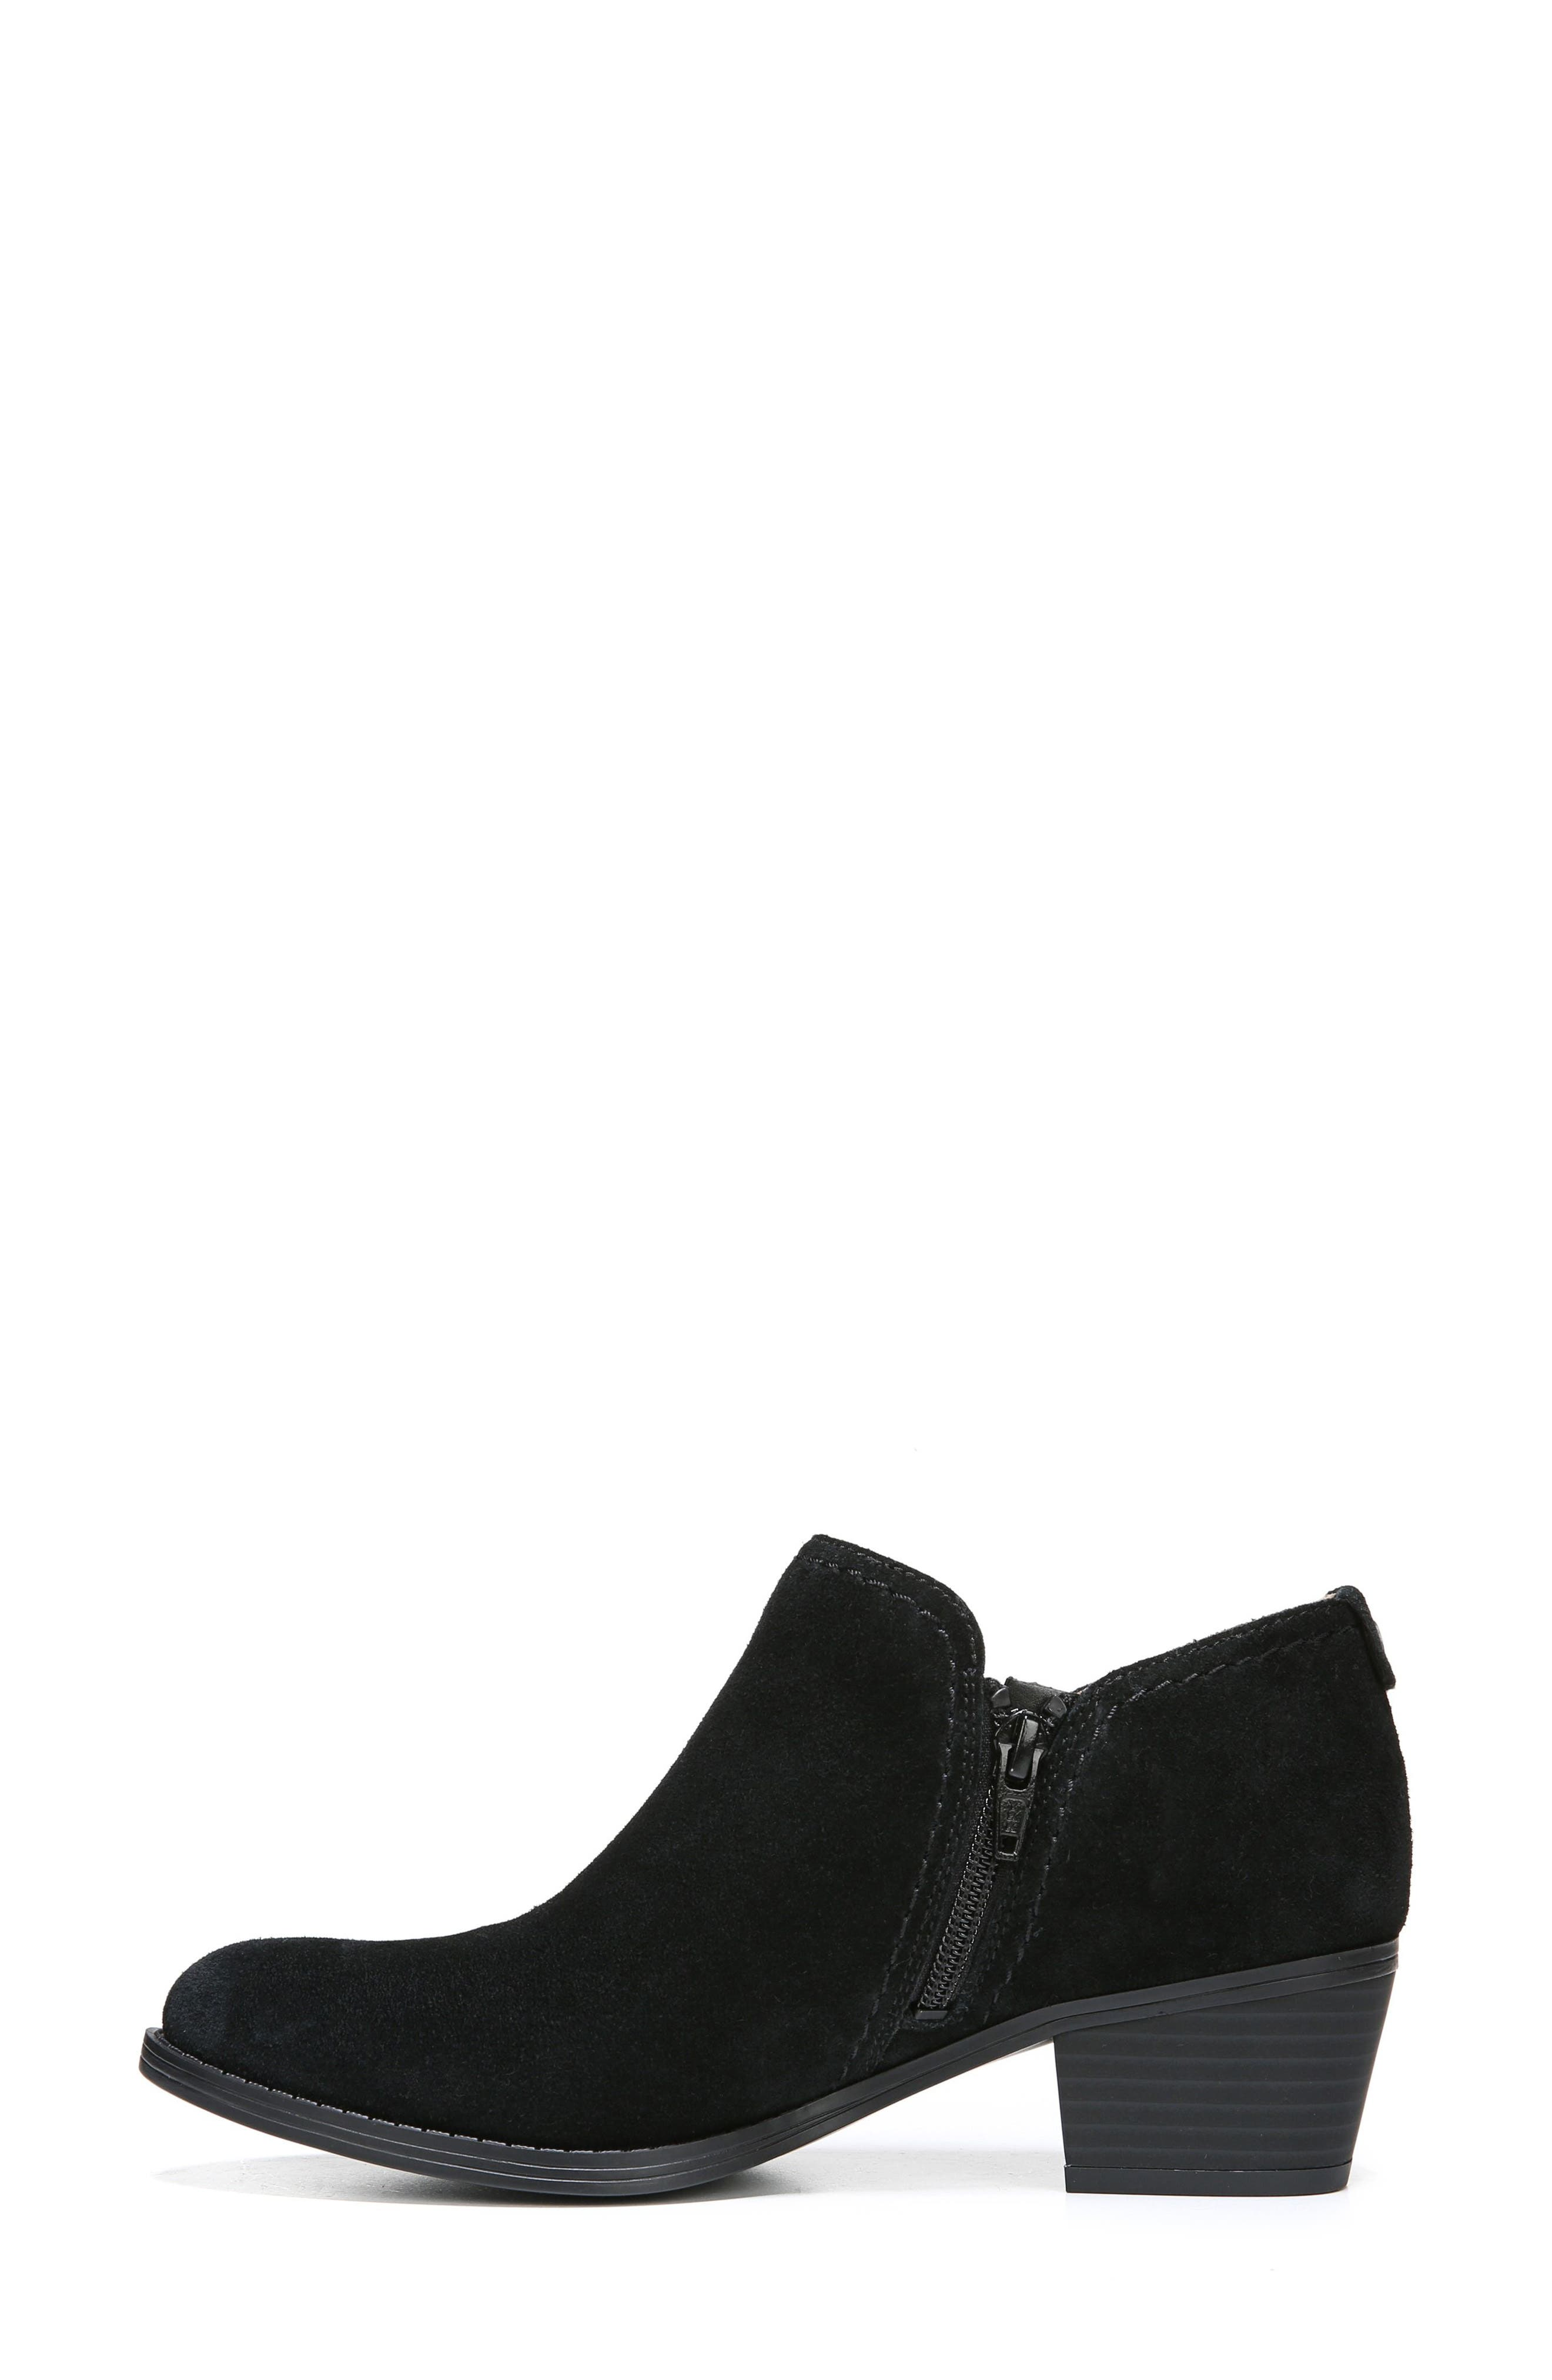 NATURALIZER, 'Zarie' Block Heel Bootie, Alternate thumbnail 8, color, 012